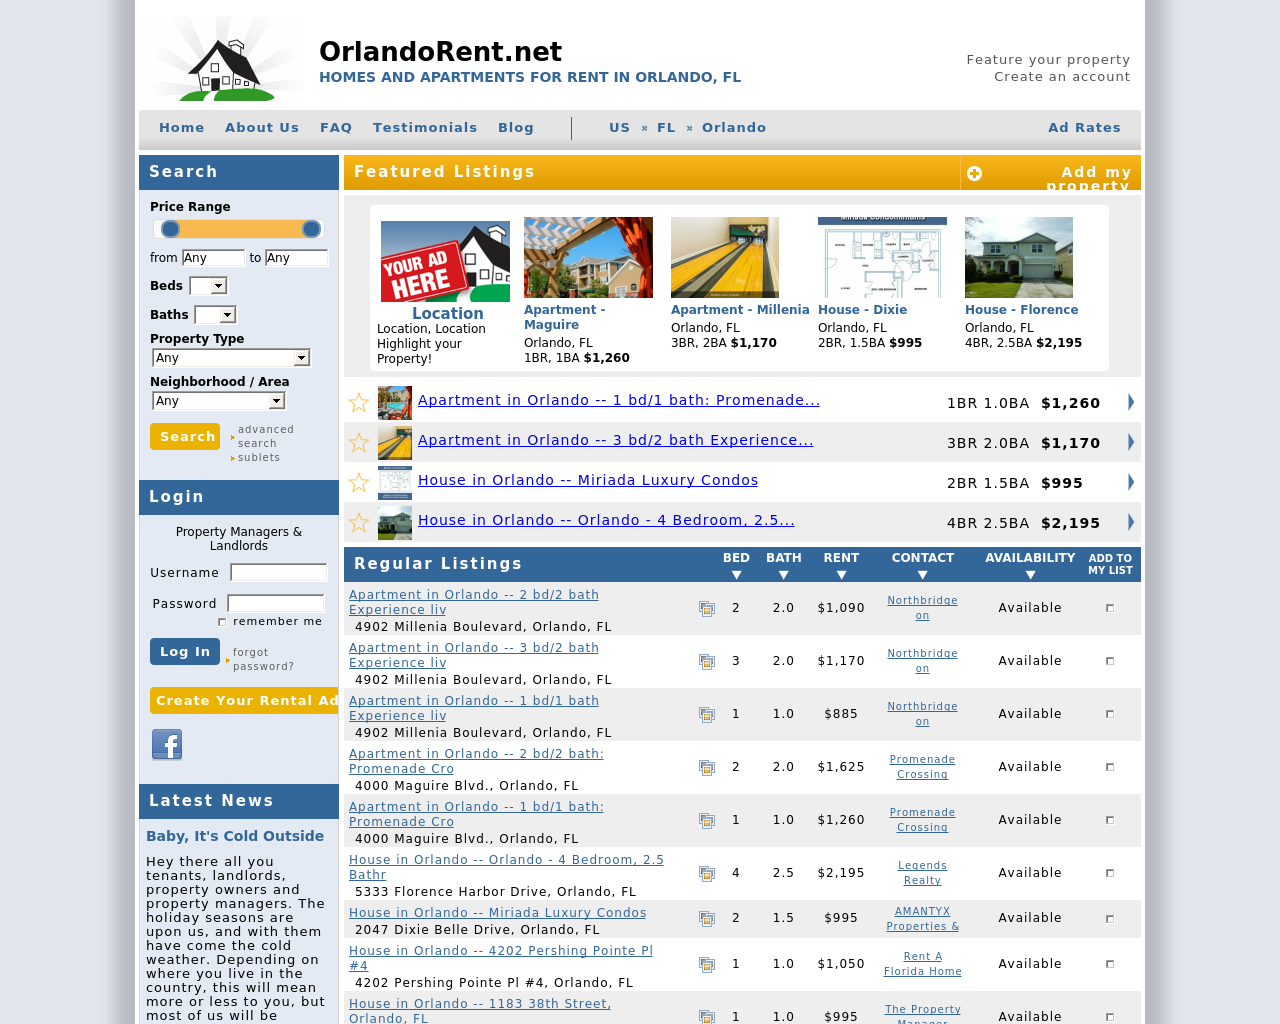 Orlando-Rent-Advertising-Reviews-Pricing